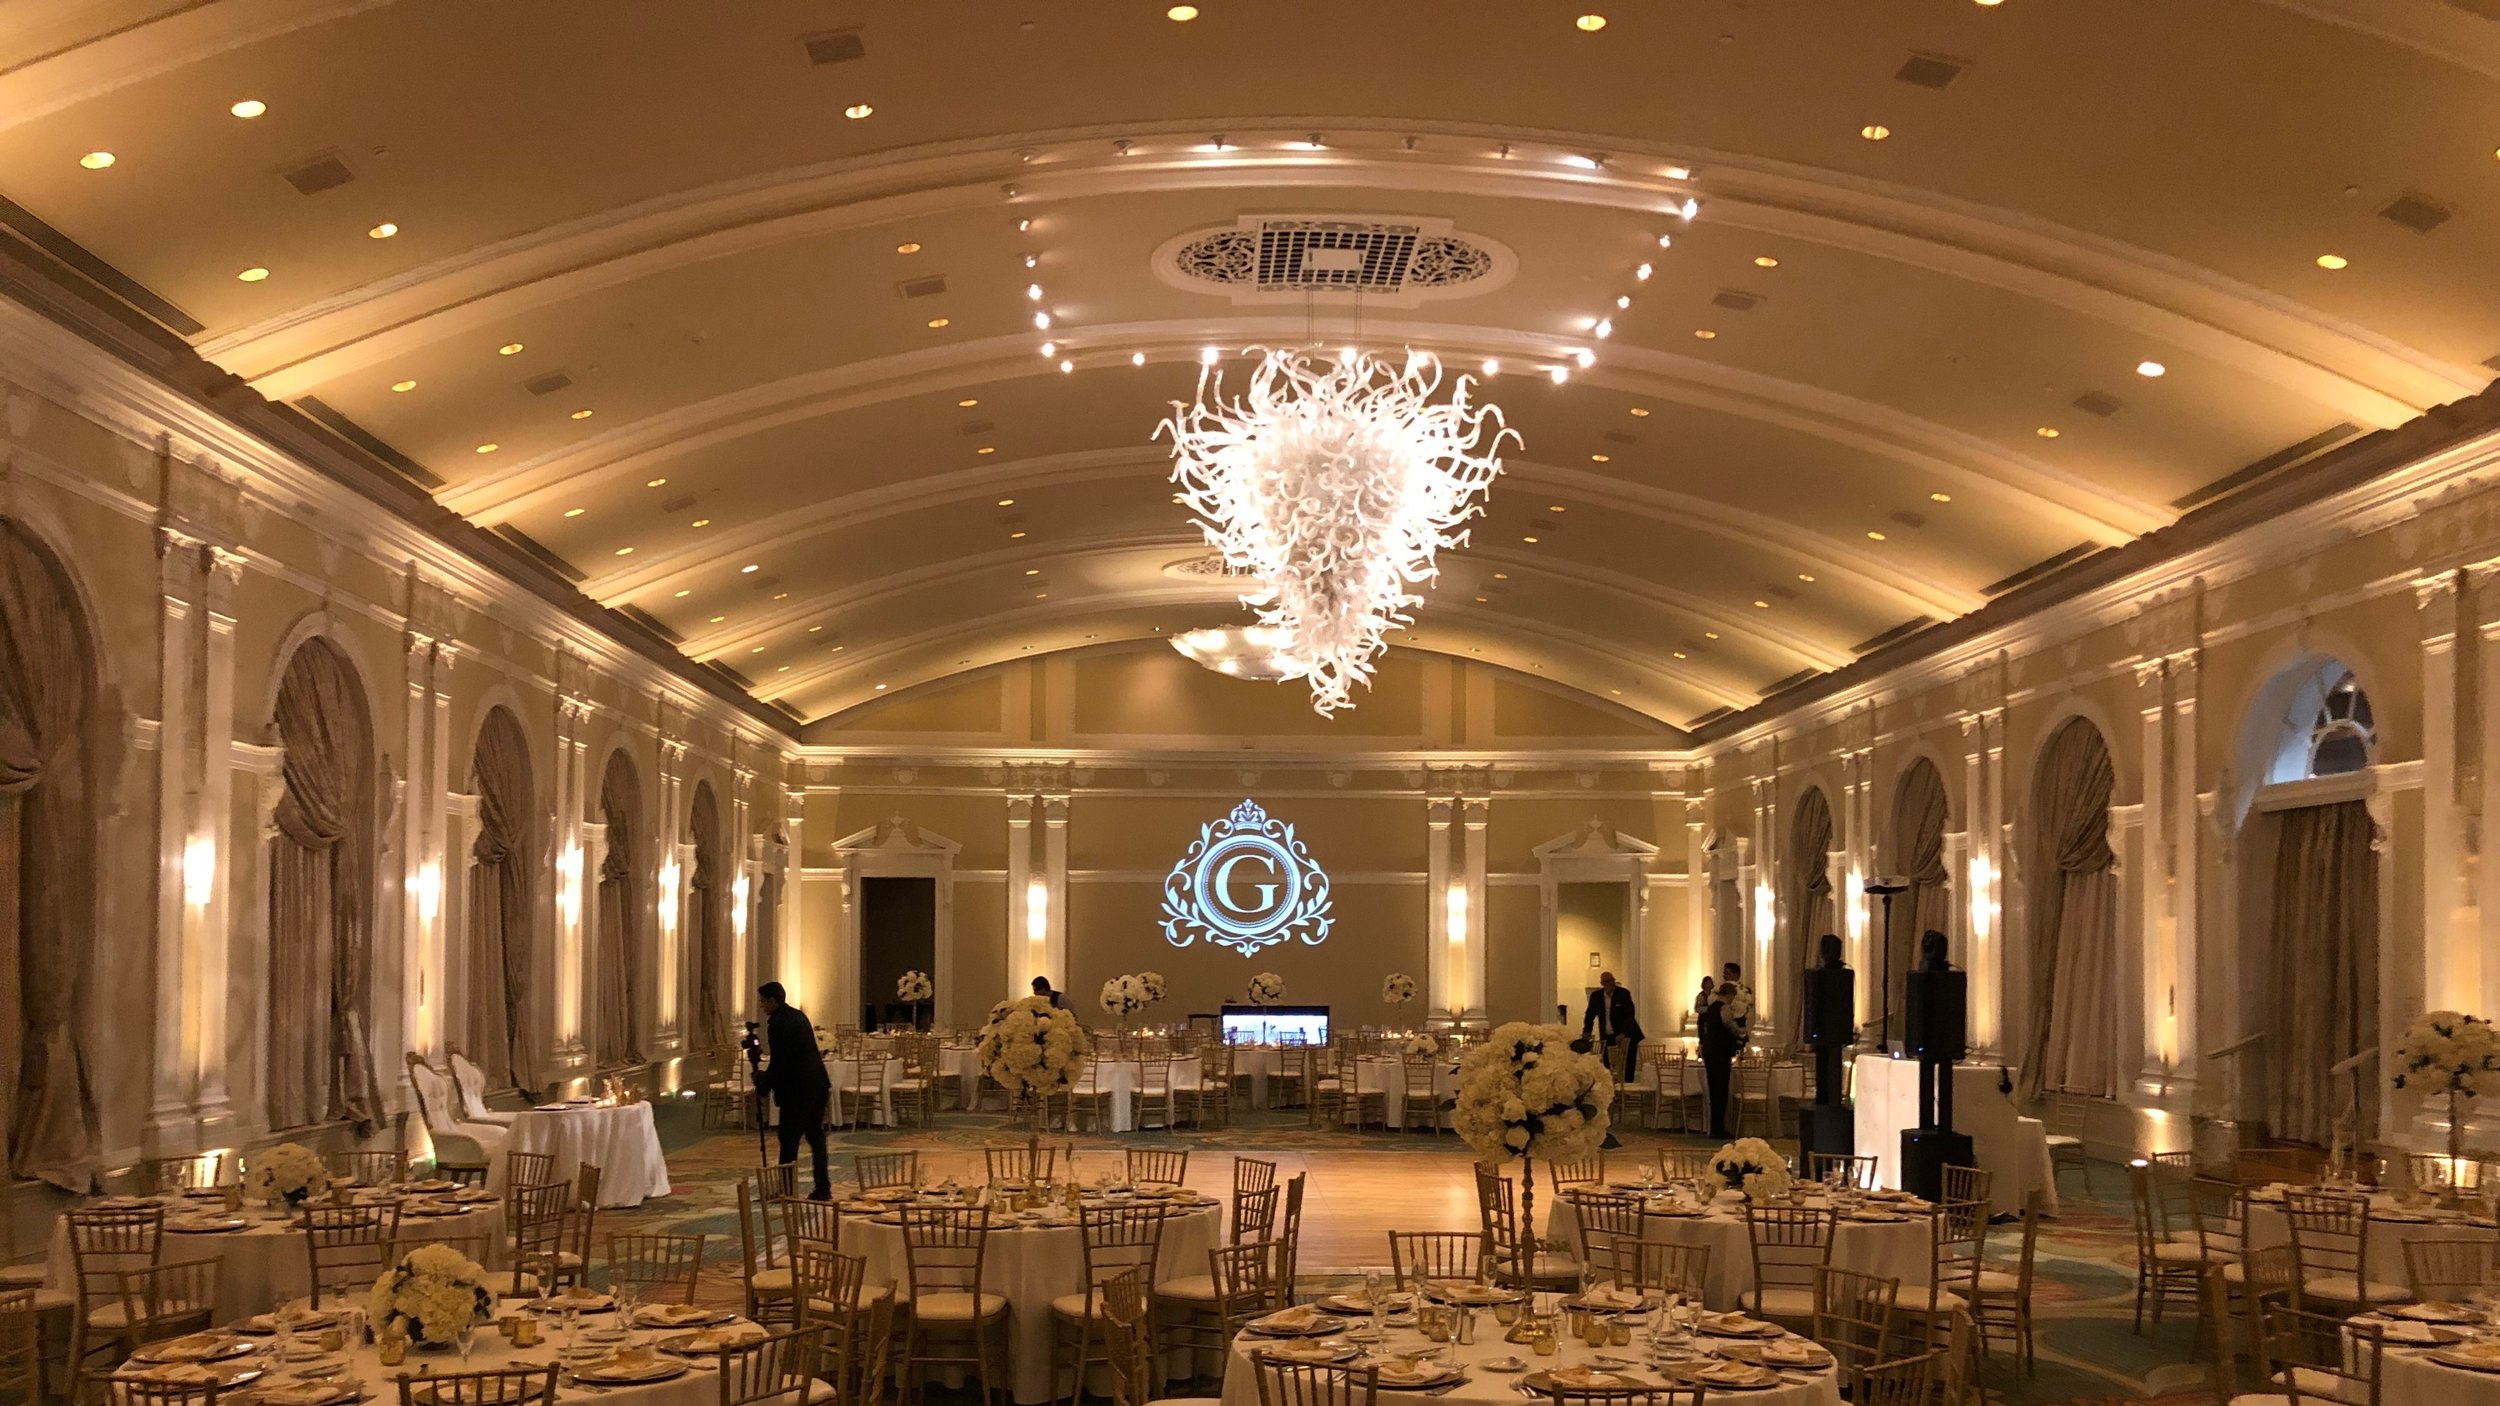 30 LED Uplights at the vinoy park hotel grand ballroom by barron + Co. DJS